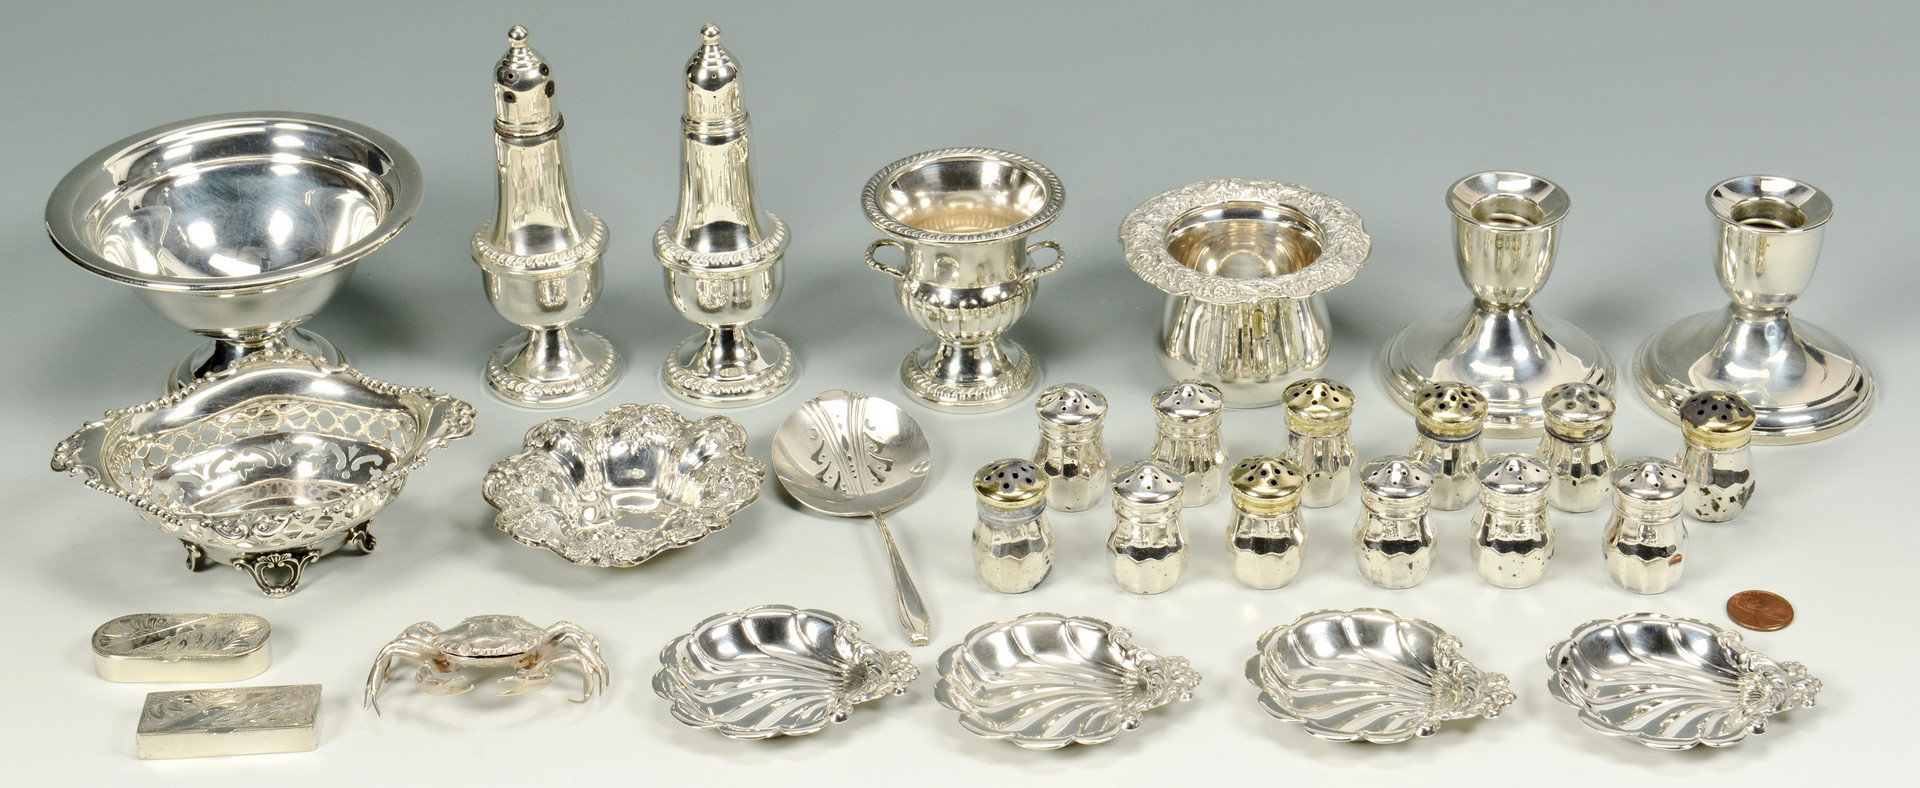 Lot 798: Assorted Sterling Silver Table Items